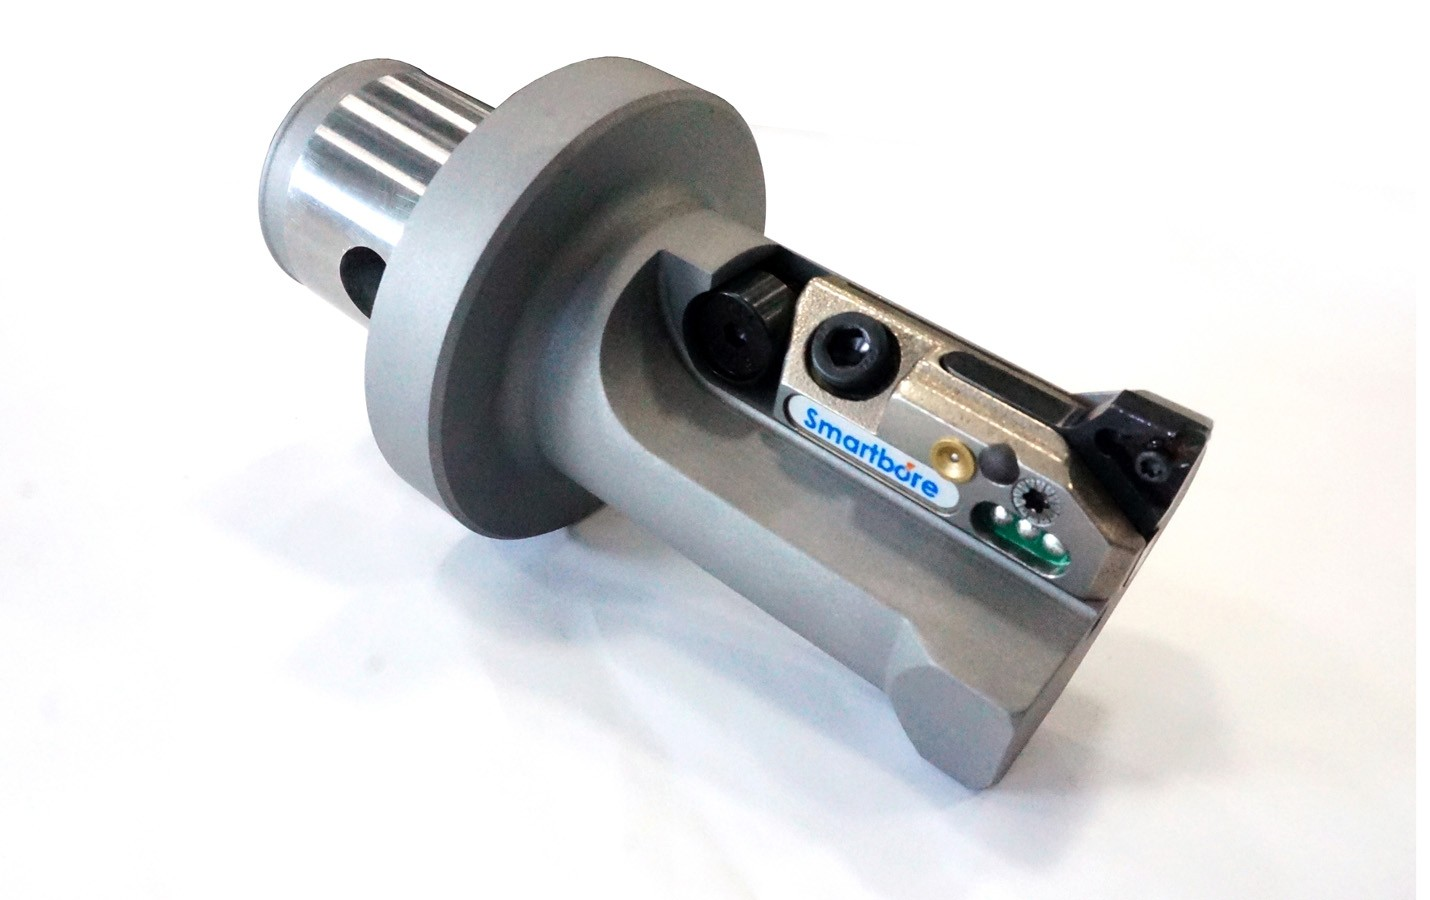 Smartbore finishing tool used to machine precision tolerances on an Aerospace component